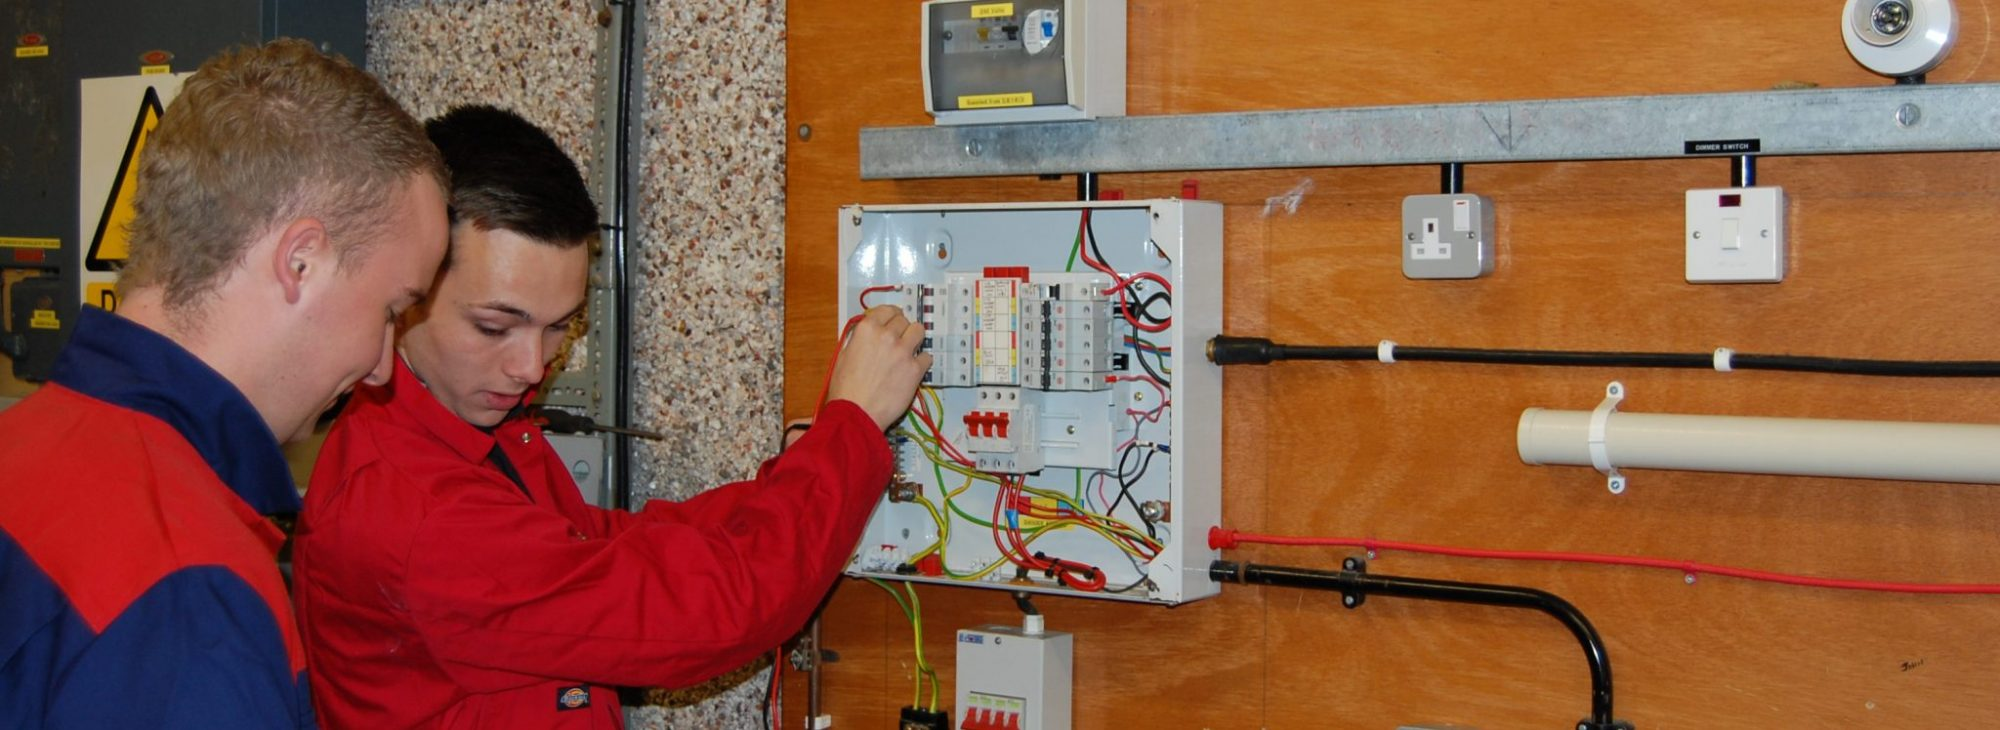 Select Launches Youtube Training Videos For Budding And Existing Electrical Wiring Electricians